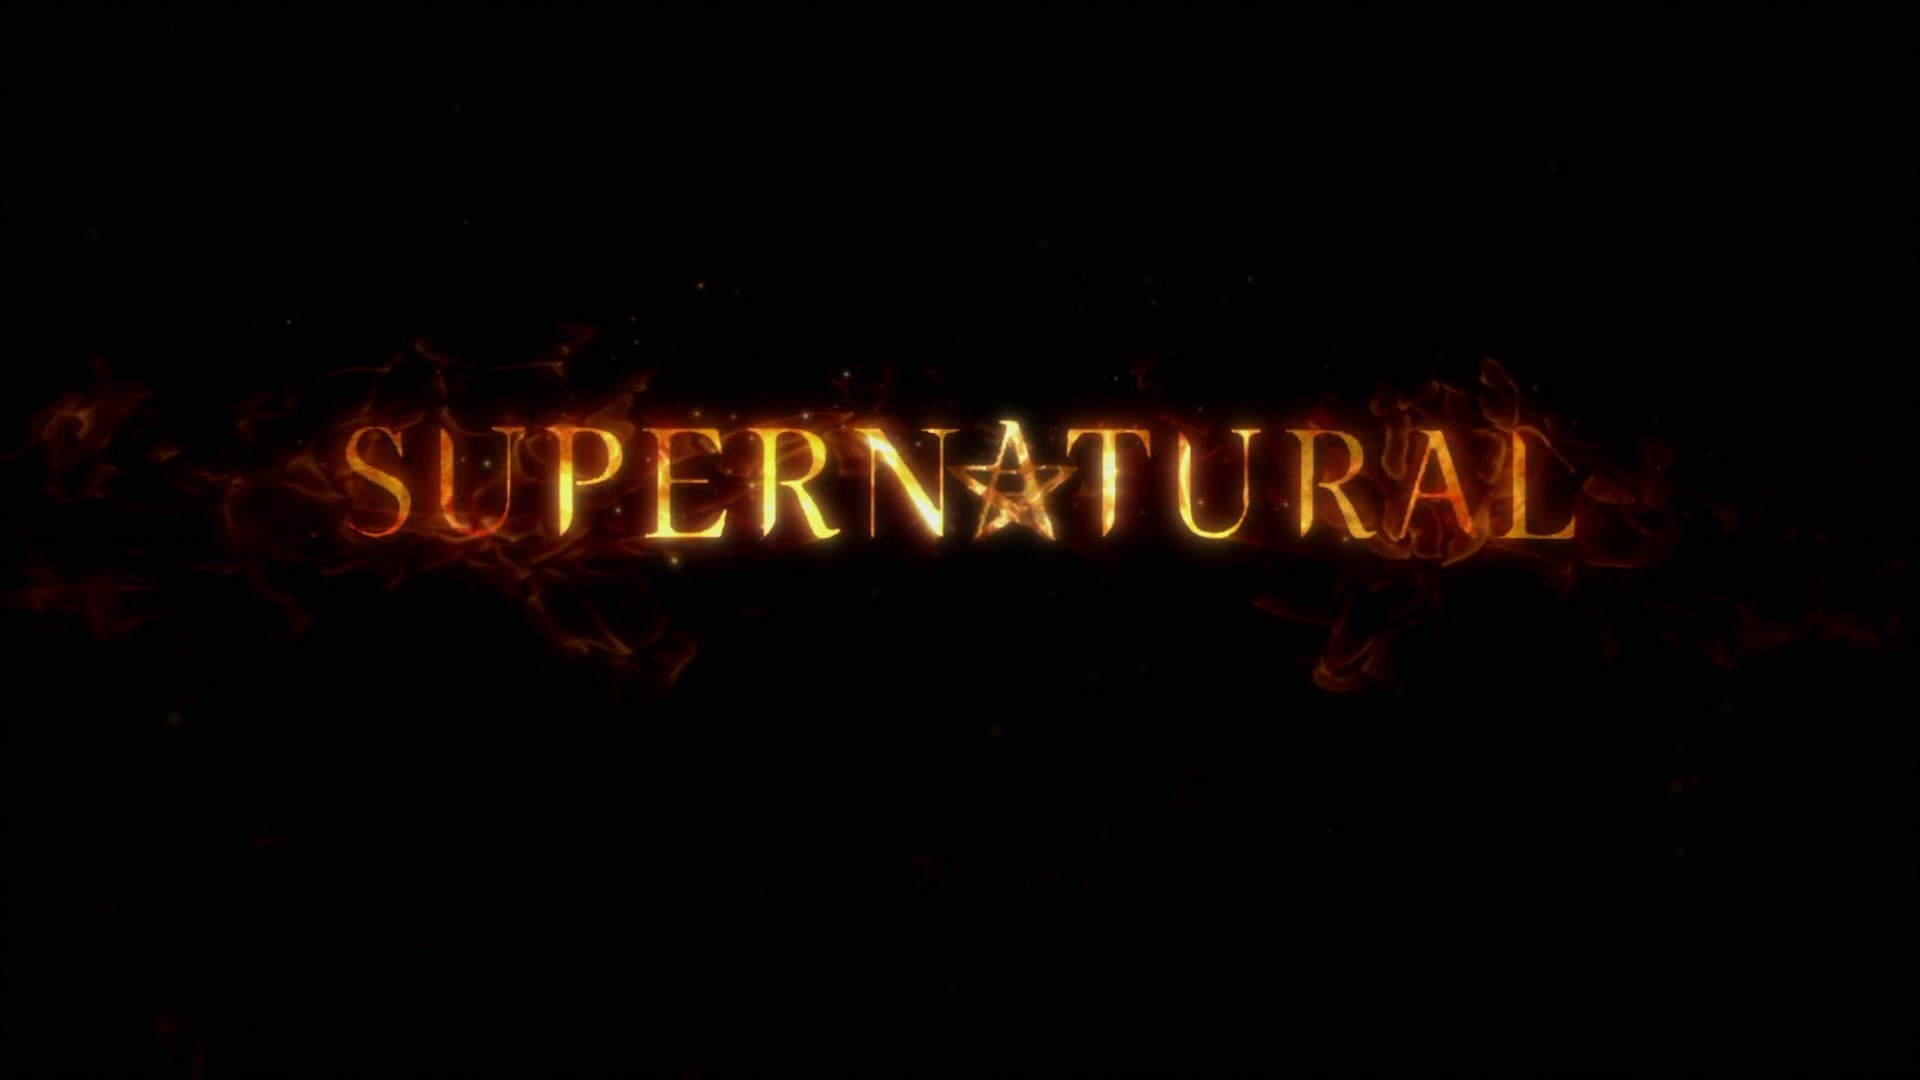 1920x1080  supernatural wallpaper hd backgrounds images